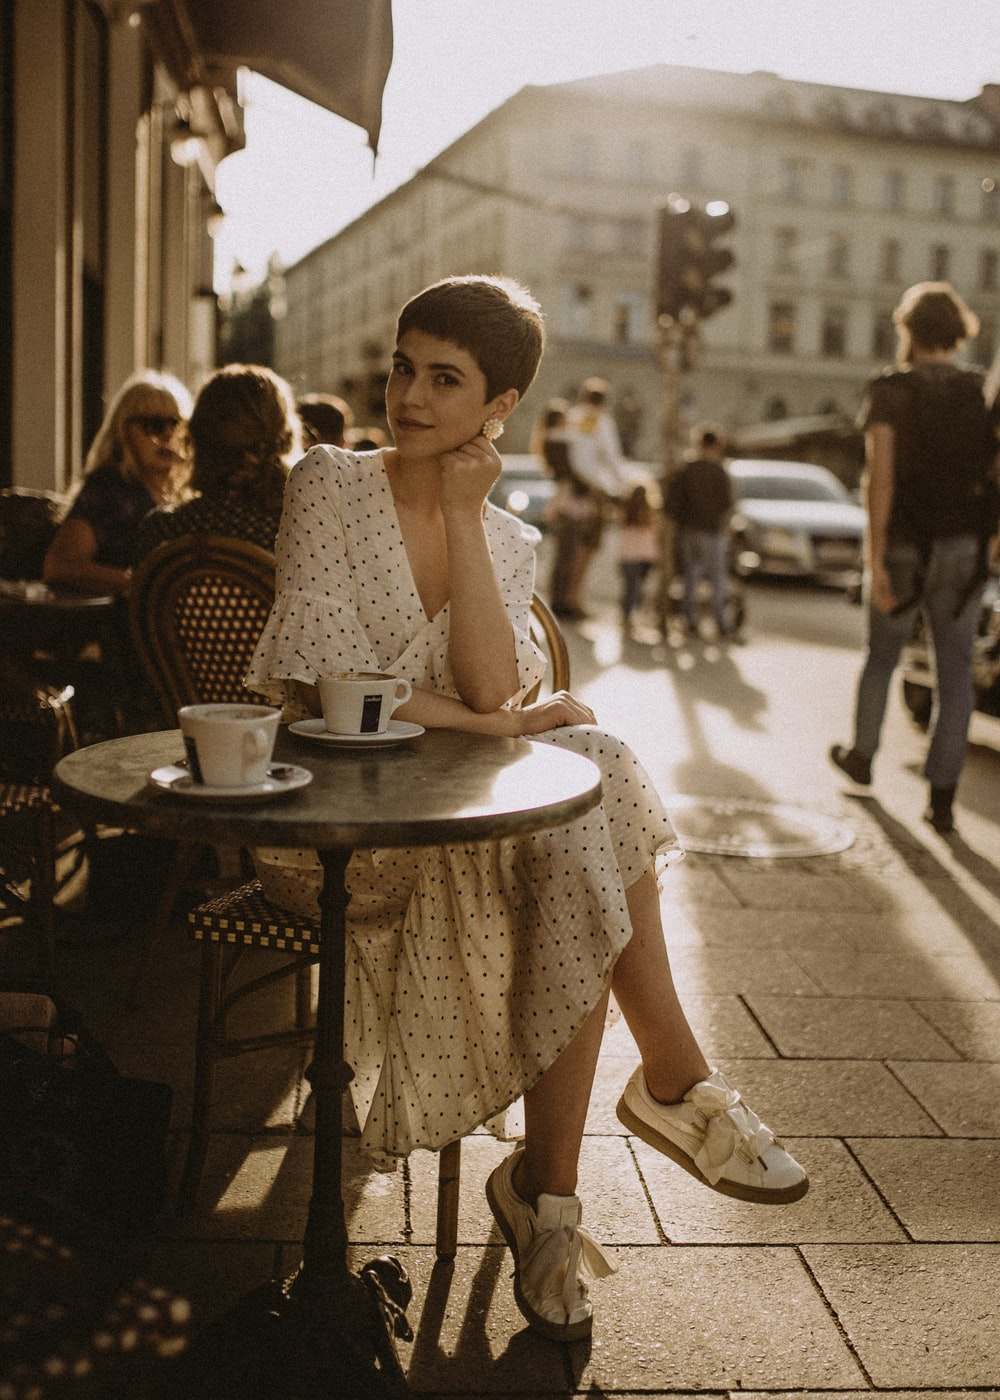 woman leaning on table in cafe